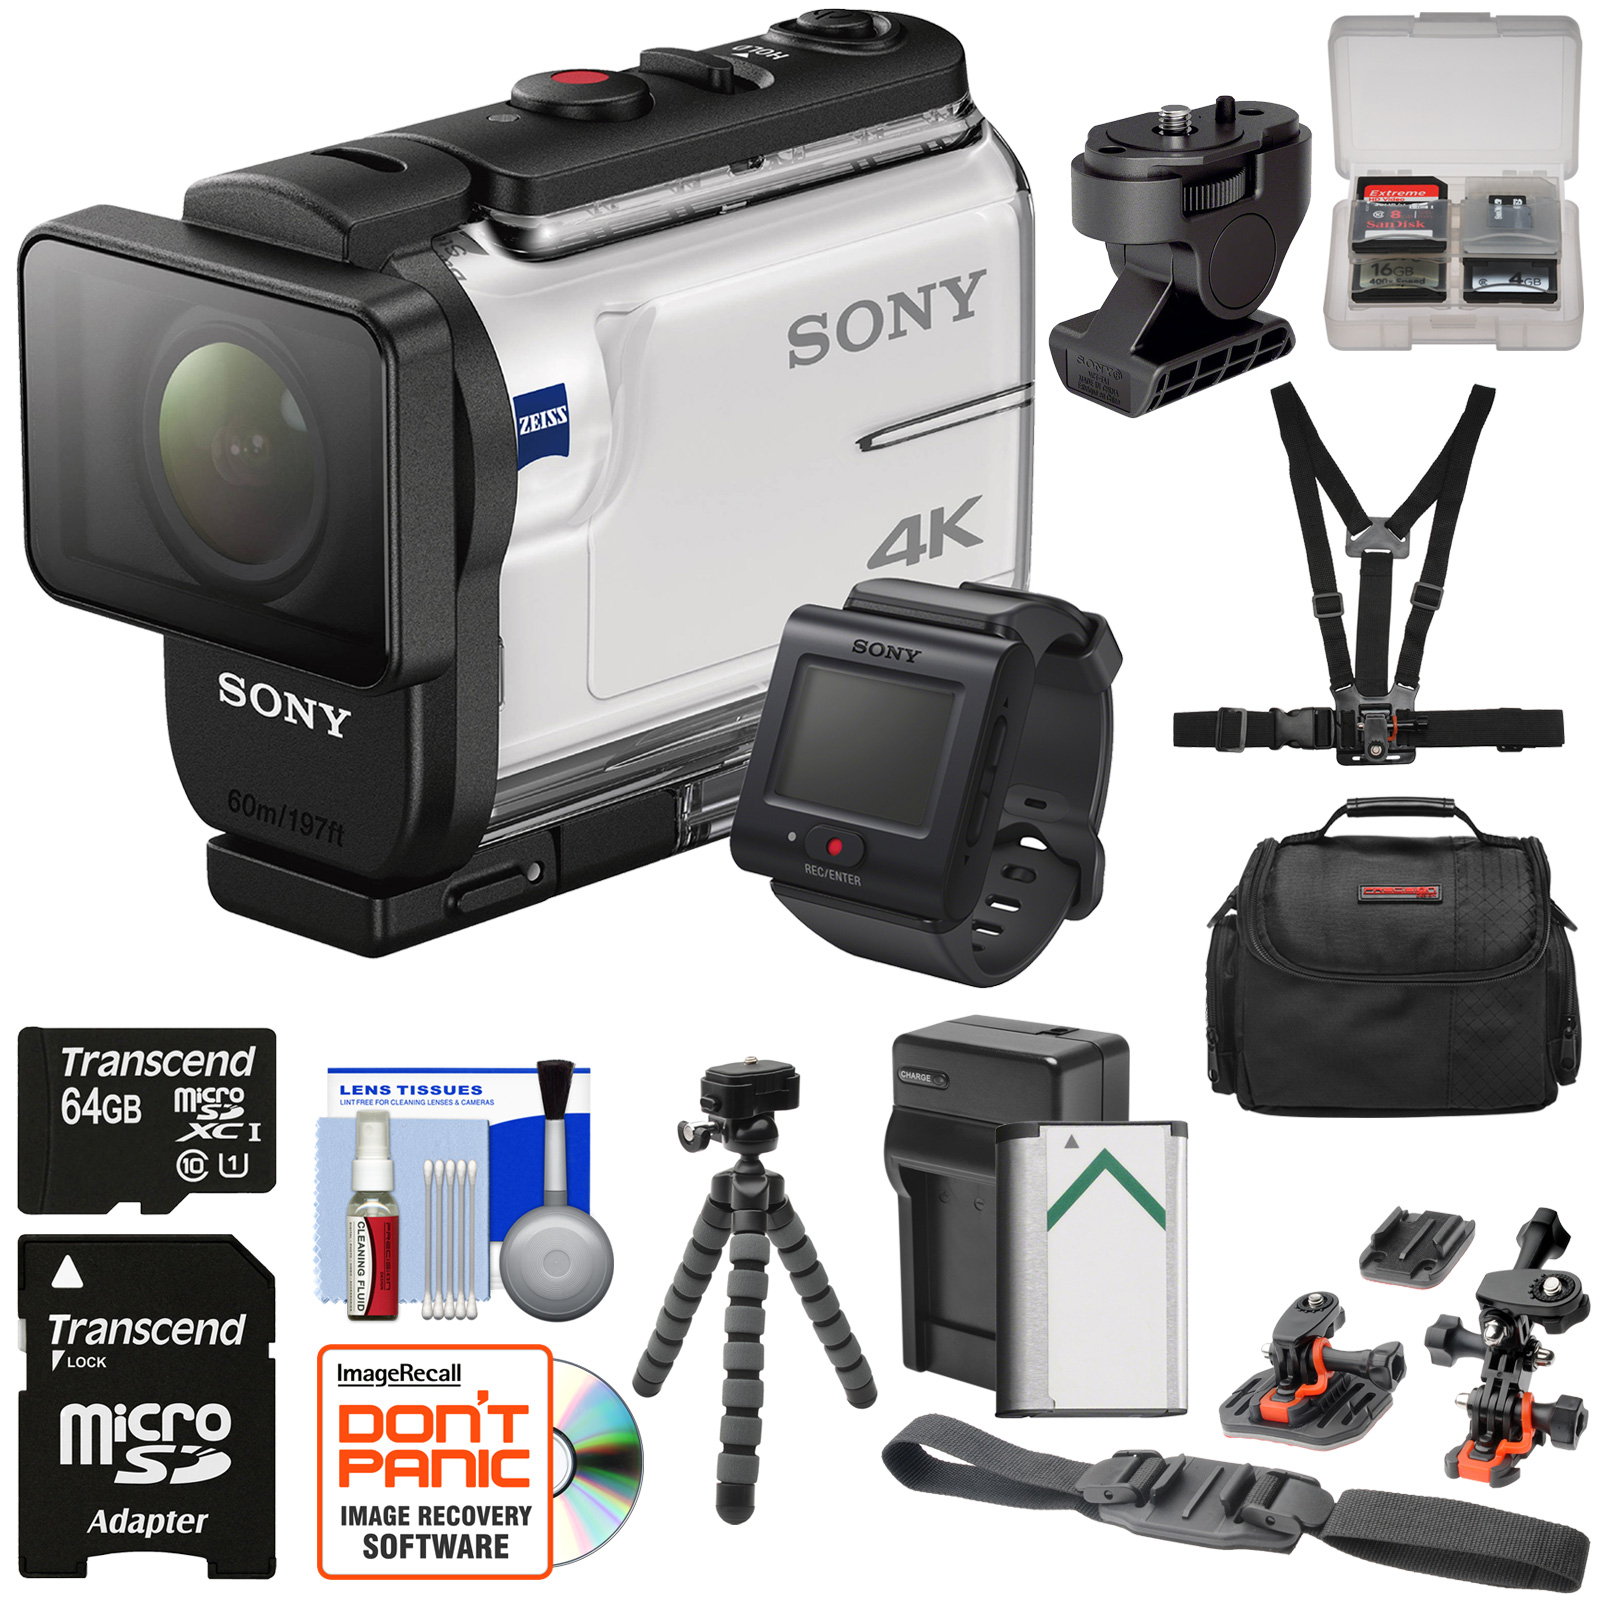 Sony Action Cam FDR-X3000R Wi-Fi GPS 4K HD Video Camera Camcorder & Live View Remote + Tilt Adapter + Action... by Sony